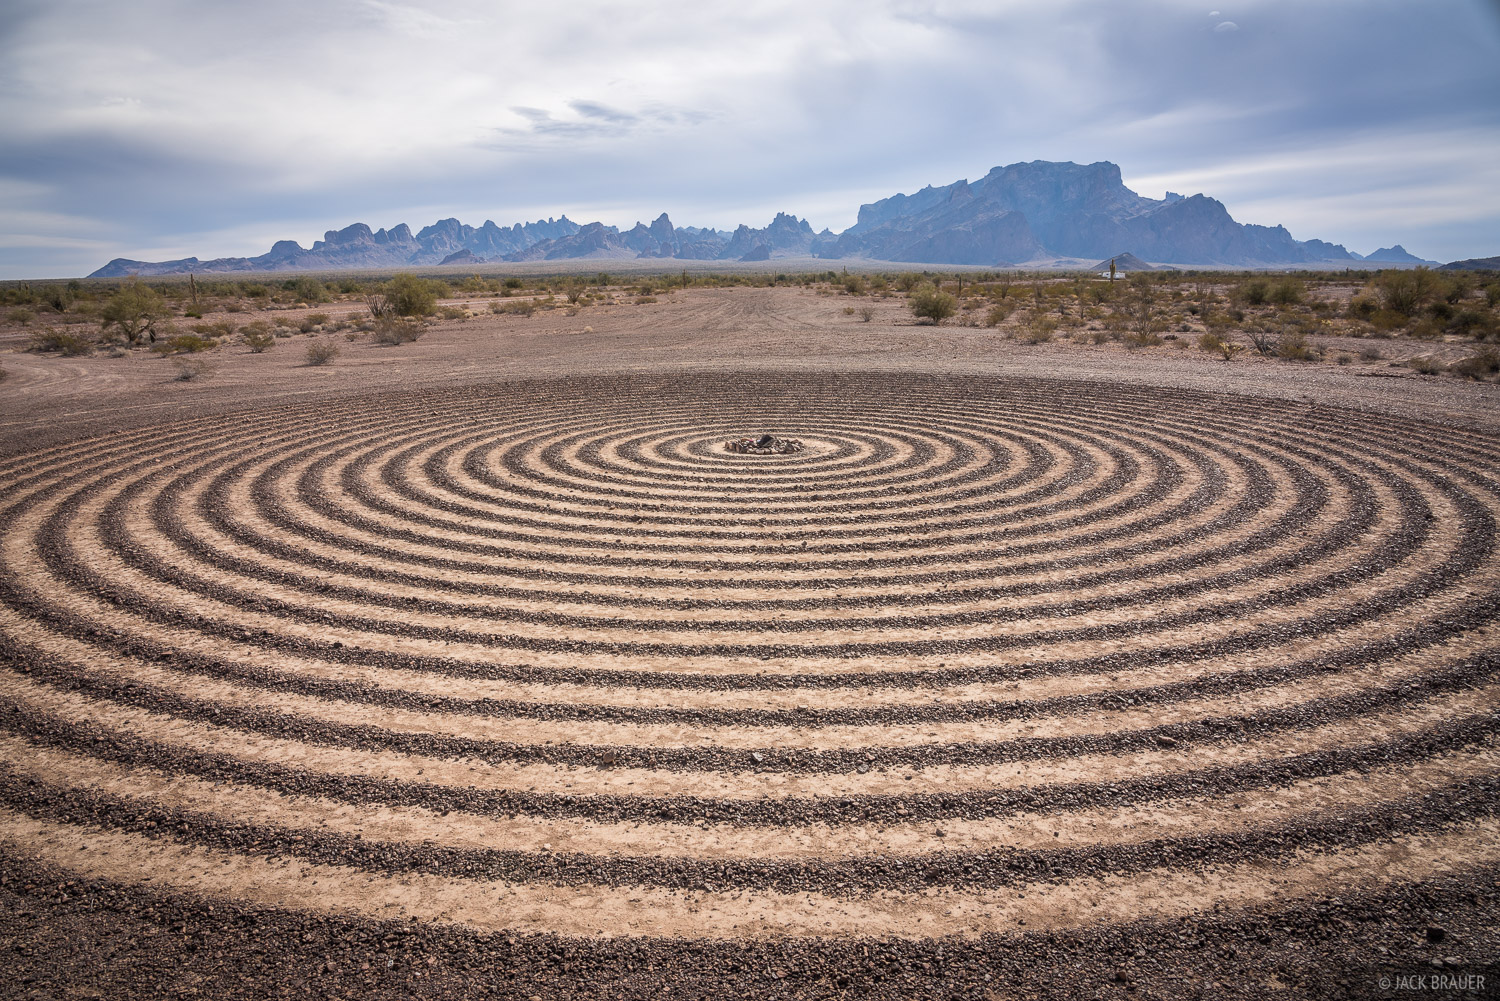 The spiral labyrinth with Signal Peak and the Kofa Mountains behind.